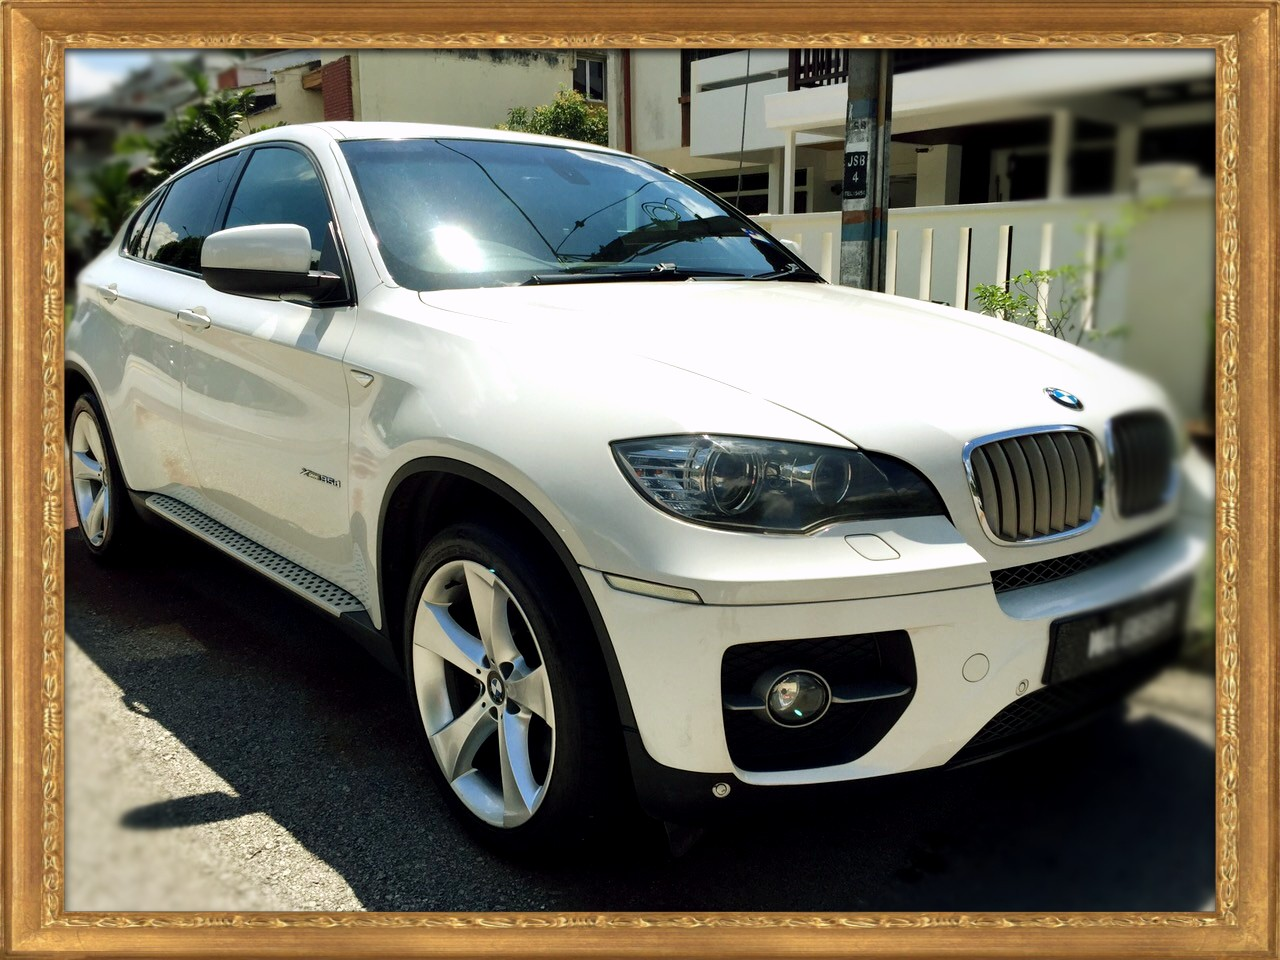 Bmw X6 Rental Bmw X6 Car Rental Malaysia Wedding Ceo Use